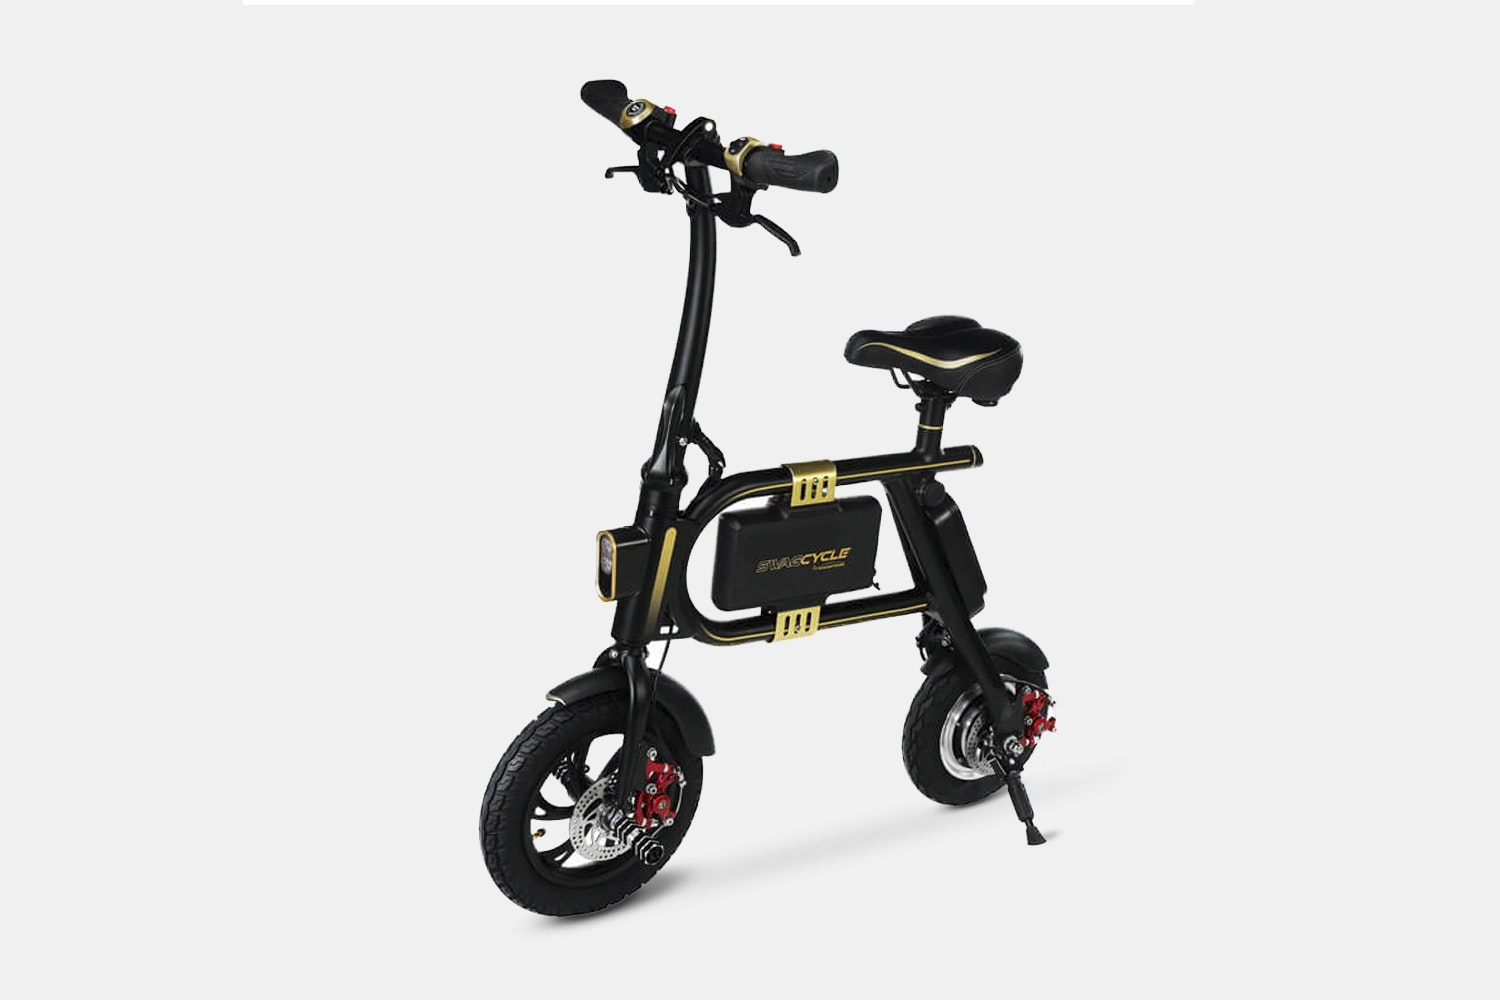 SC-1 Swagcycle - Black (+ $90)